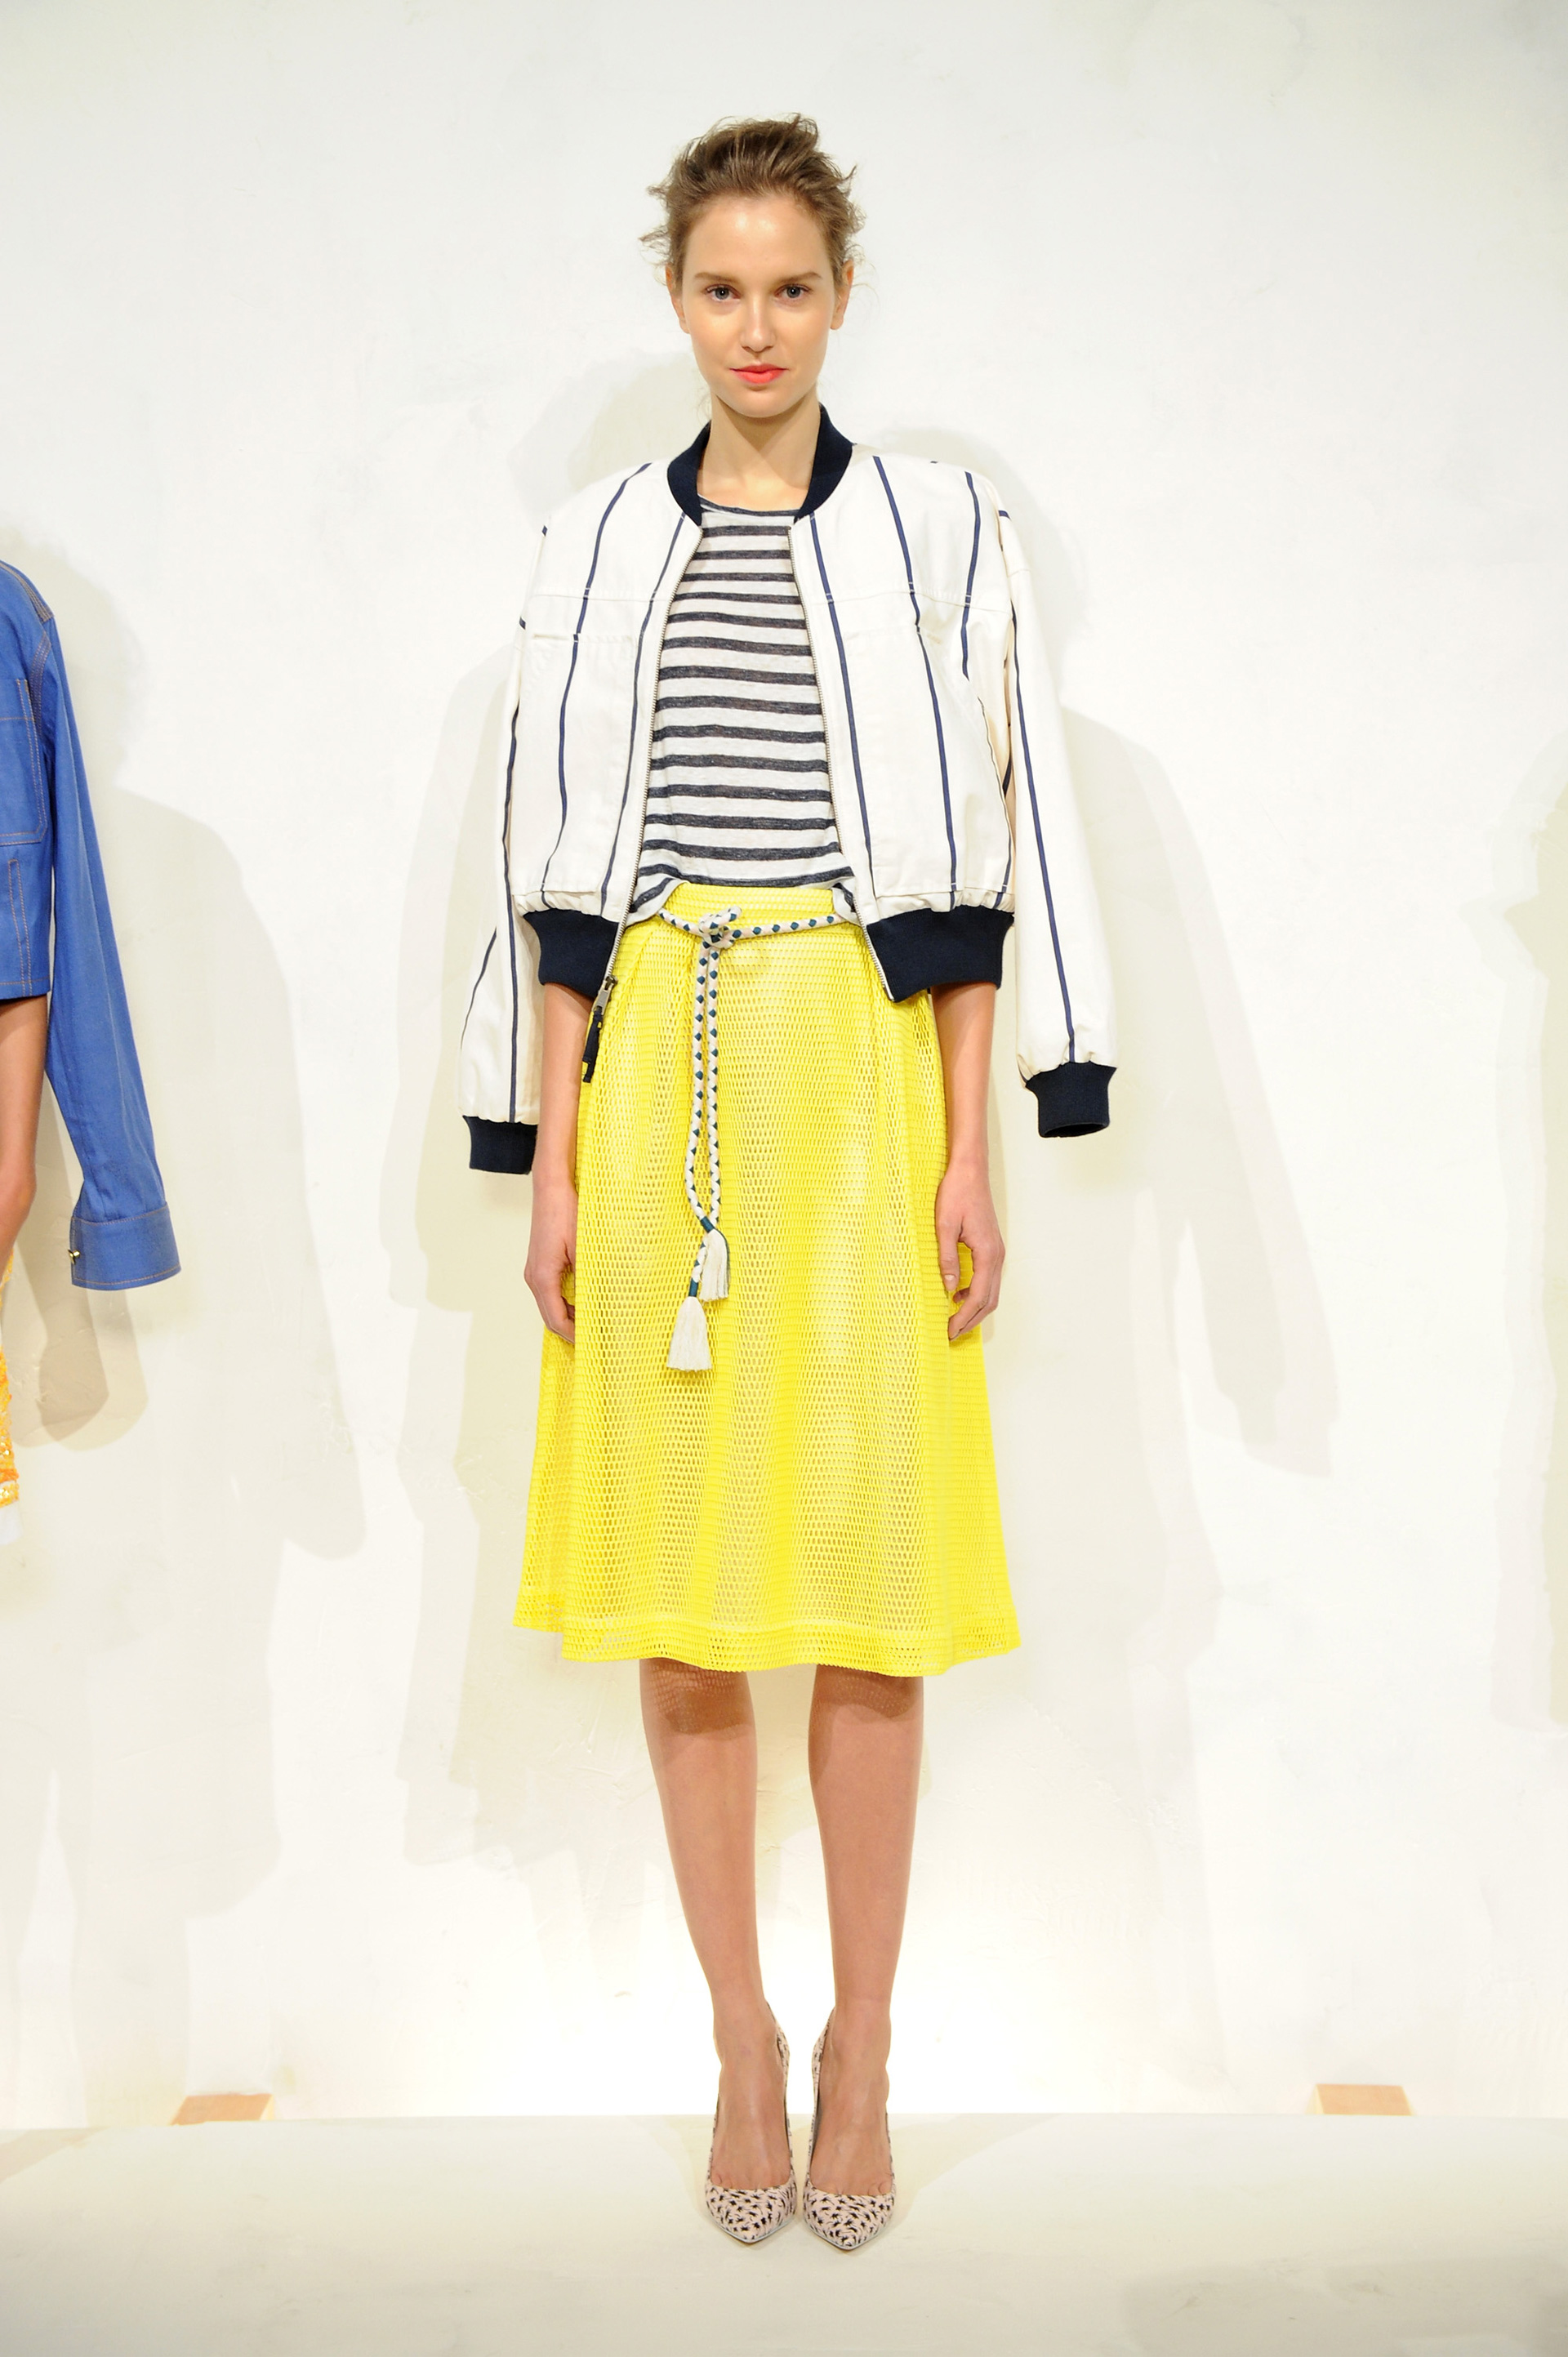 2015 J.Crew collection pieces 7